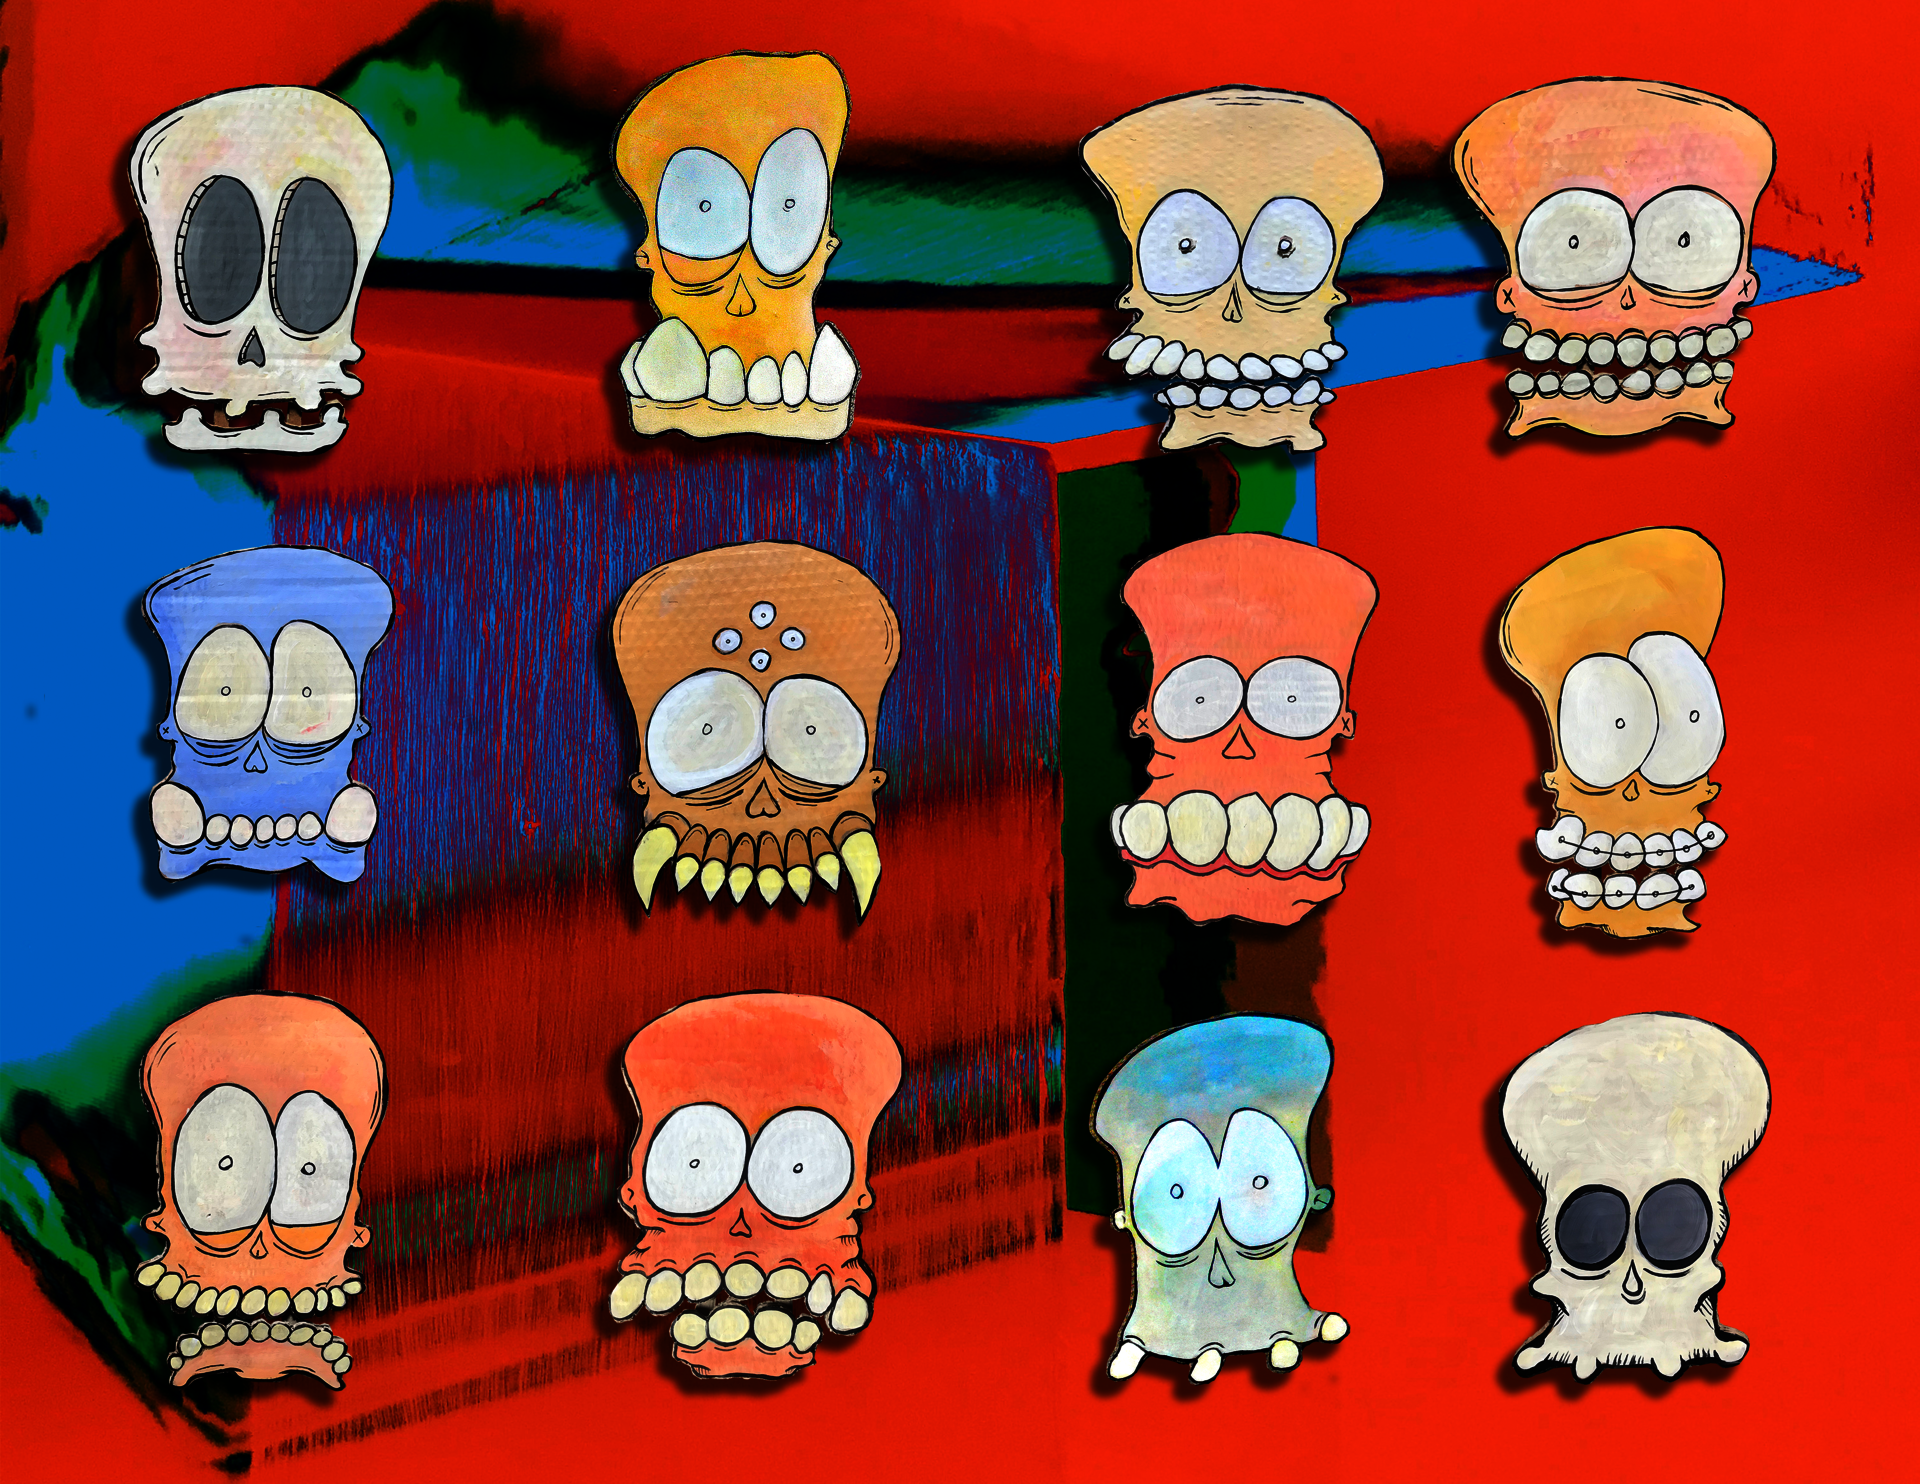 Collage of illustrated Knobbhead characters